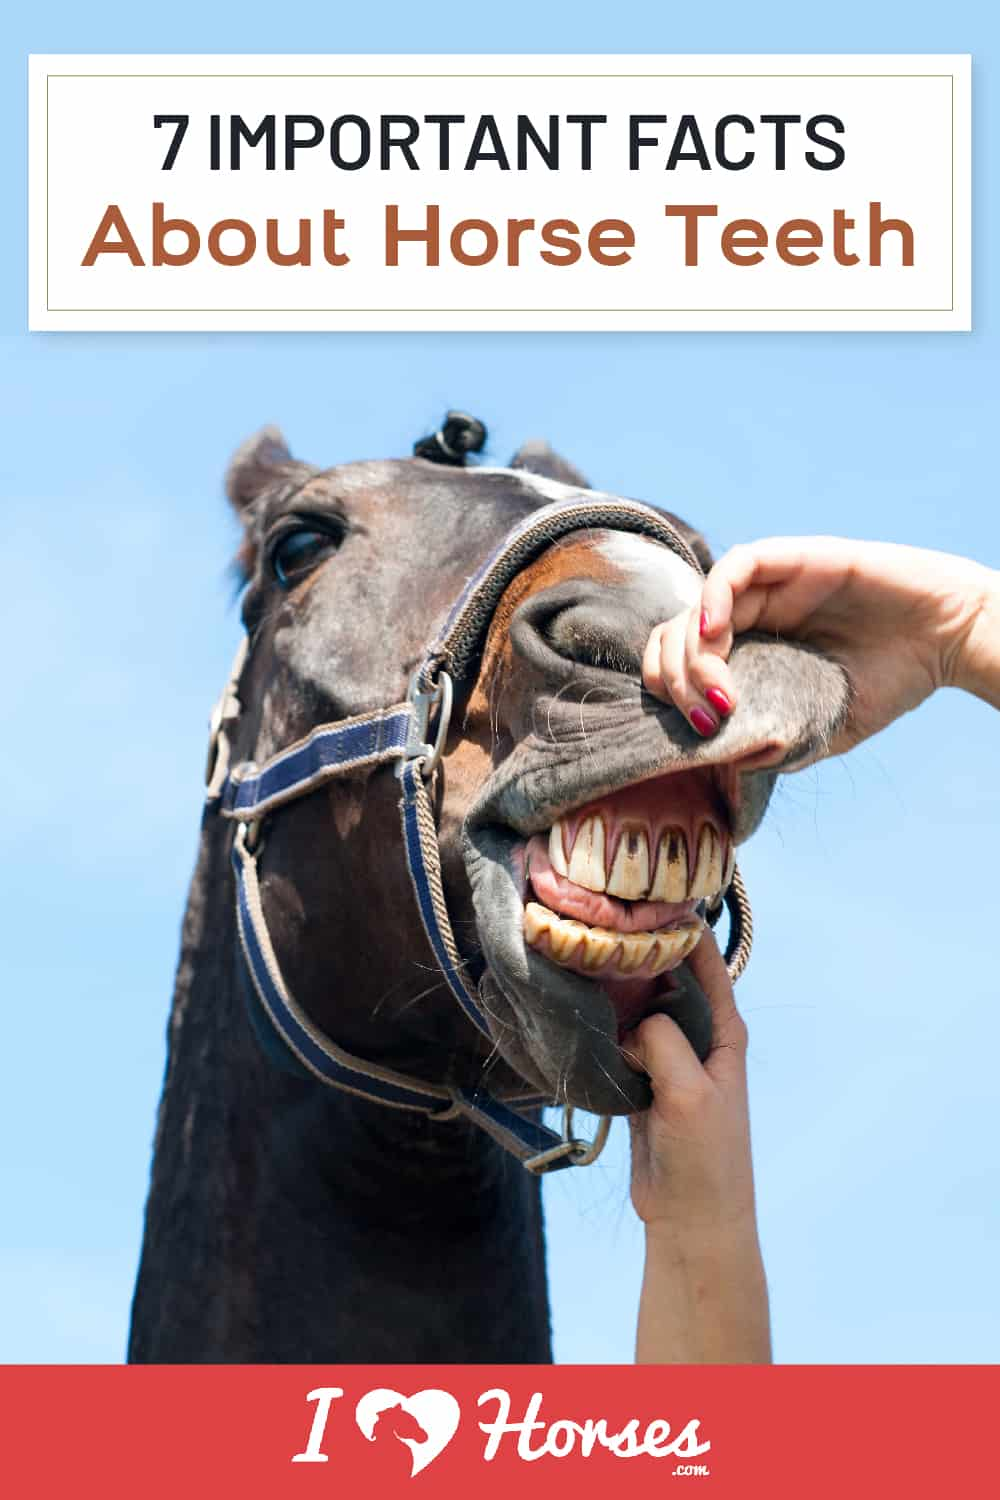 7 Important Facts About Horse Teeth-01-01